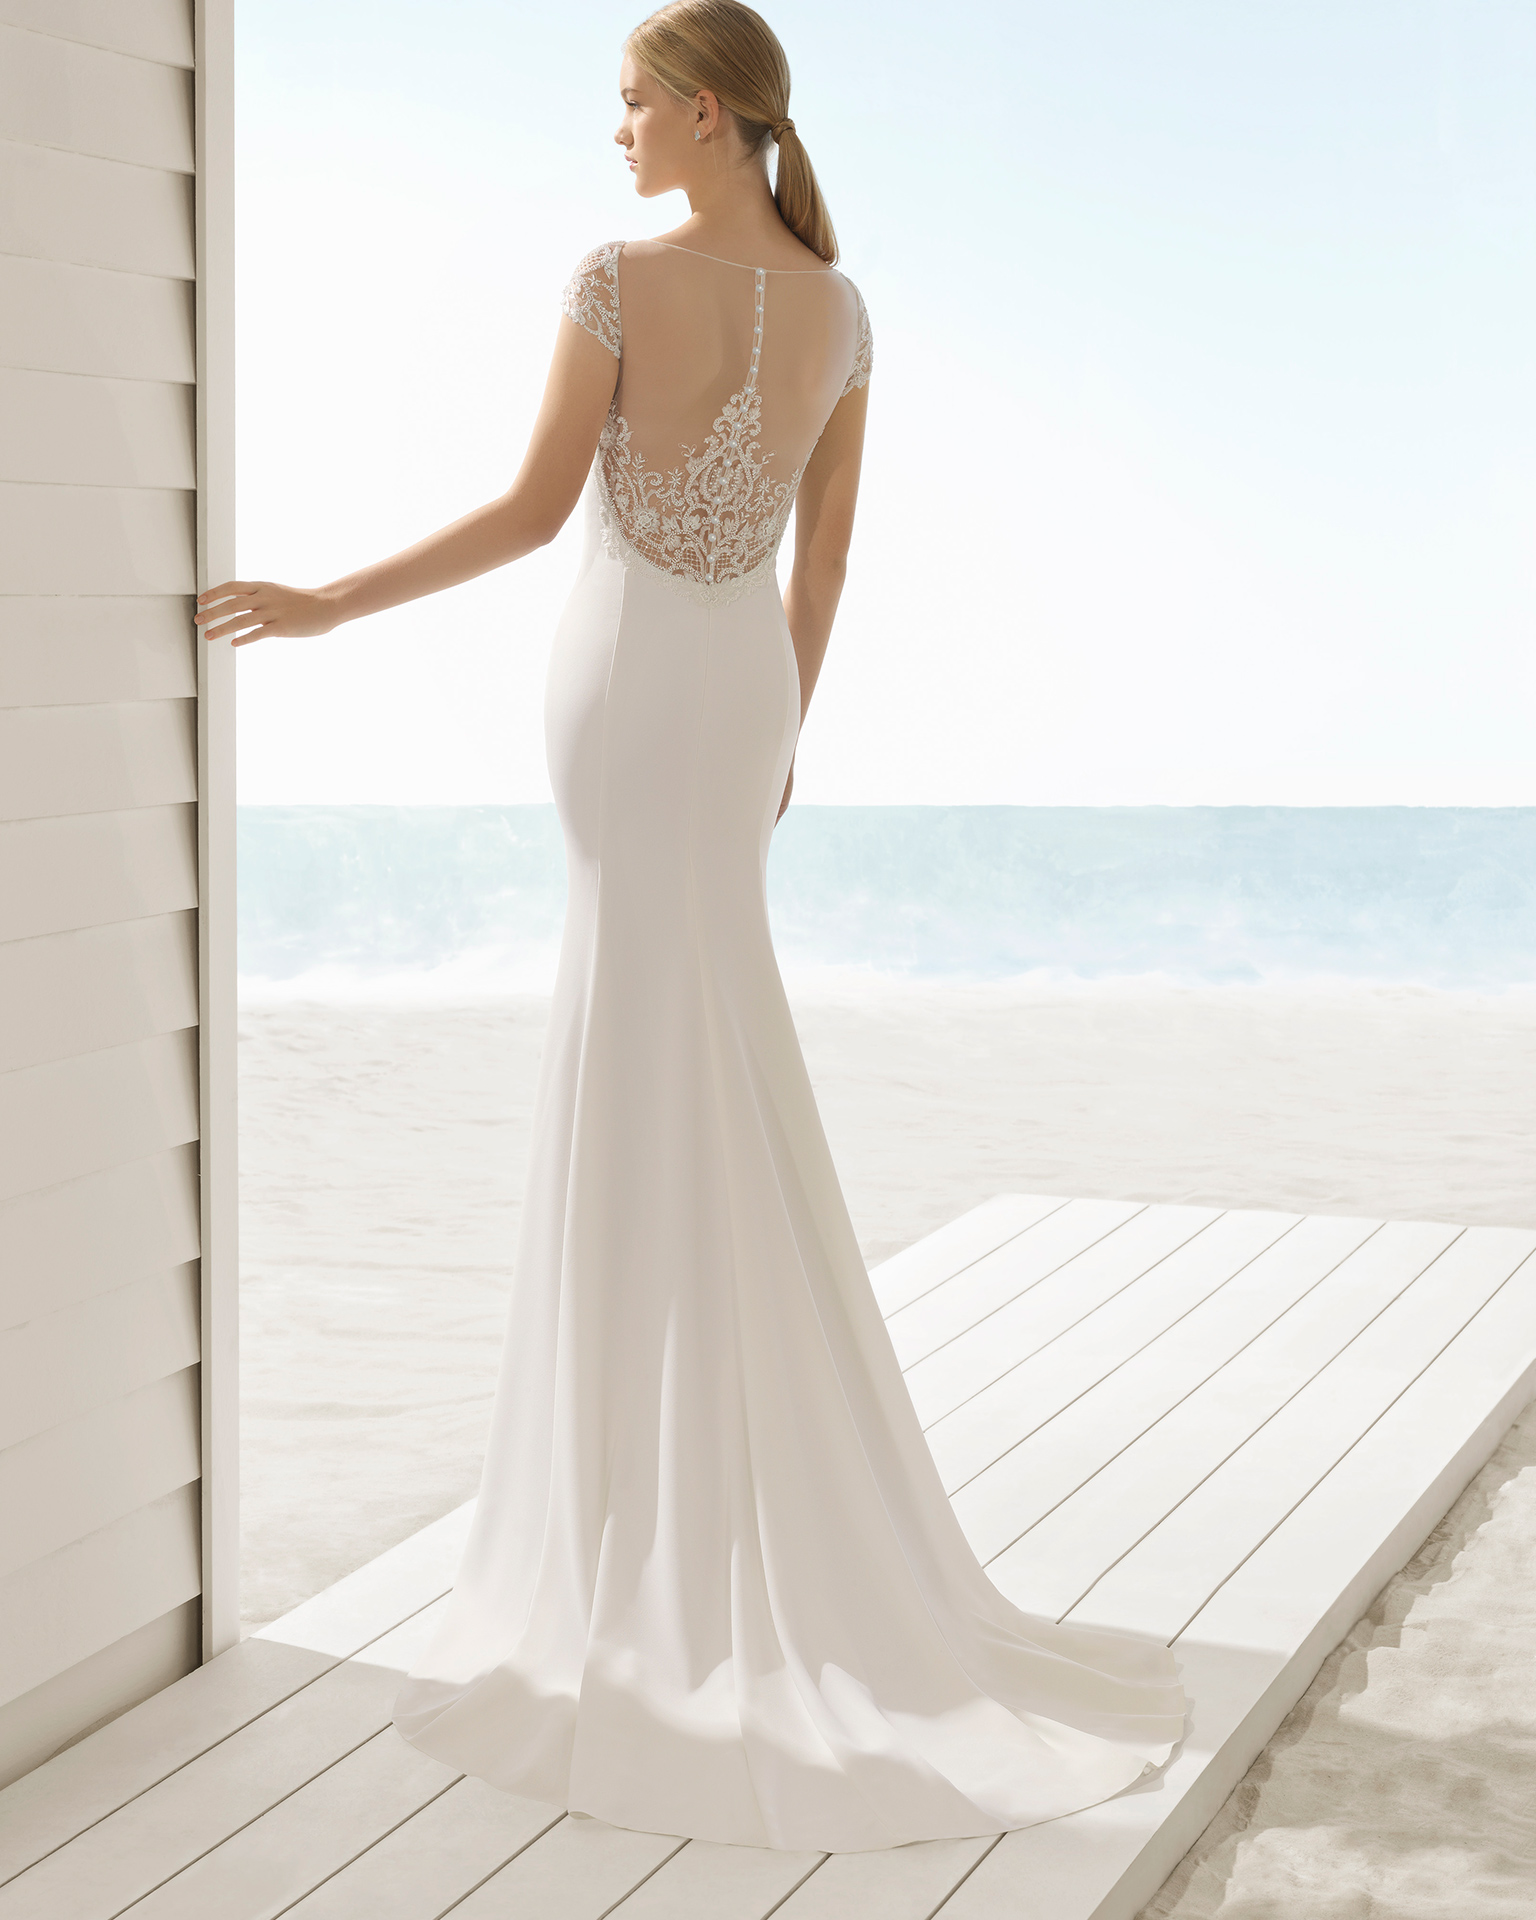 Mermaid-style crepe wedding dress with jeweled back.